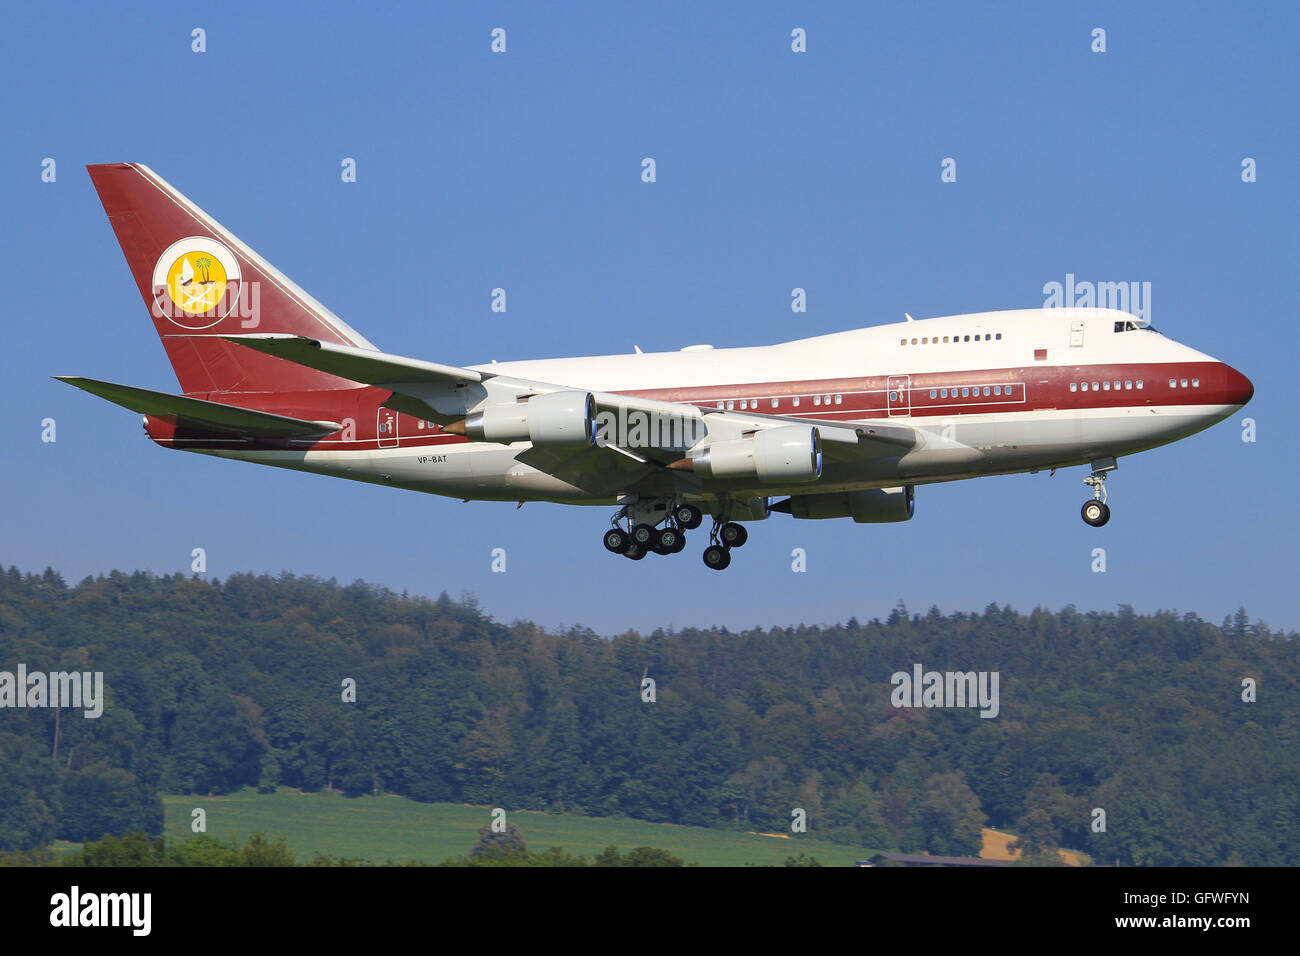 Zurich/Switzerland August 2, 2014: Boeing 747Sp from Quatar Amiri Flight at Zurich Airport. - Stock Image